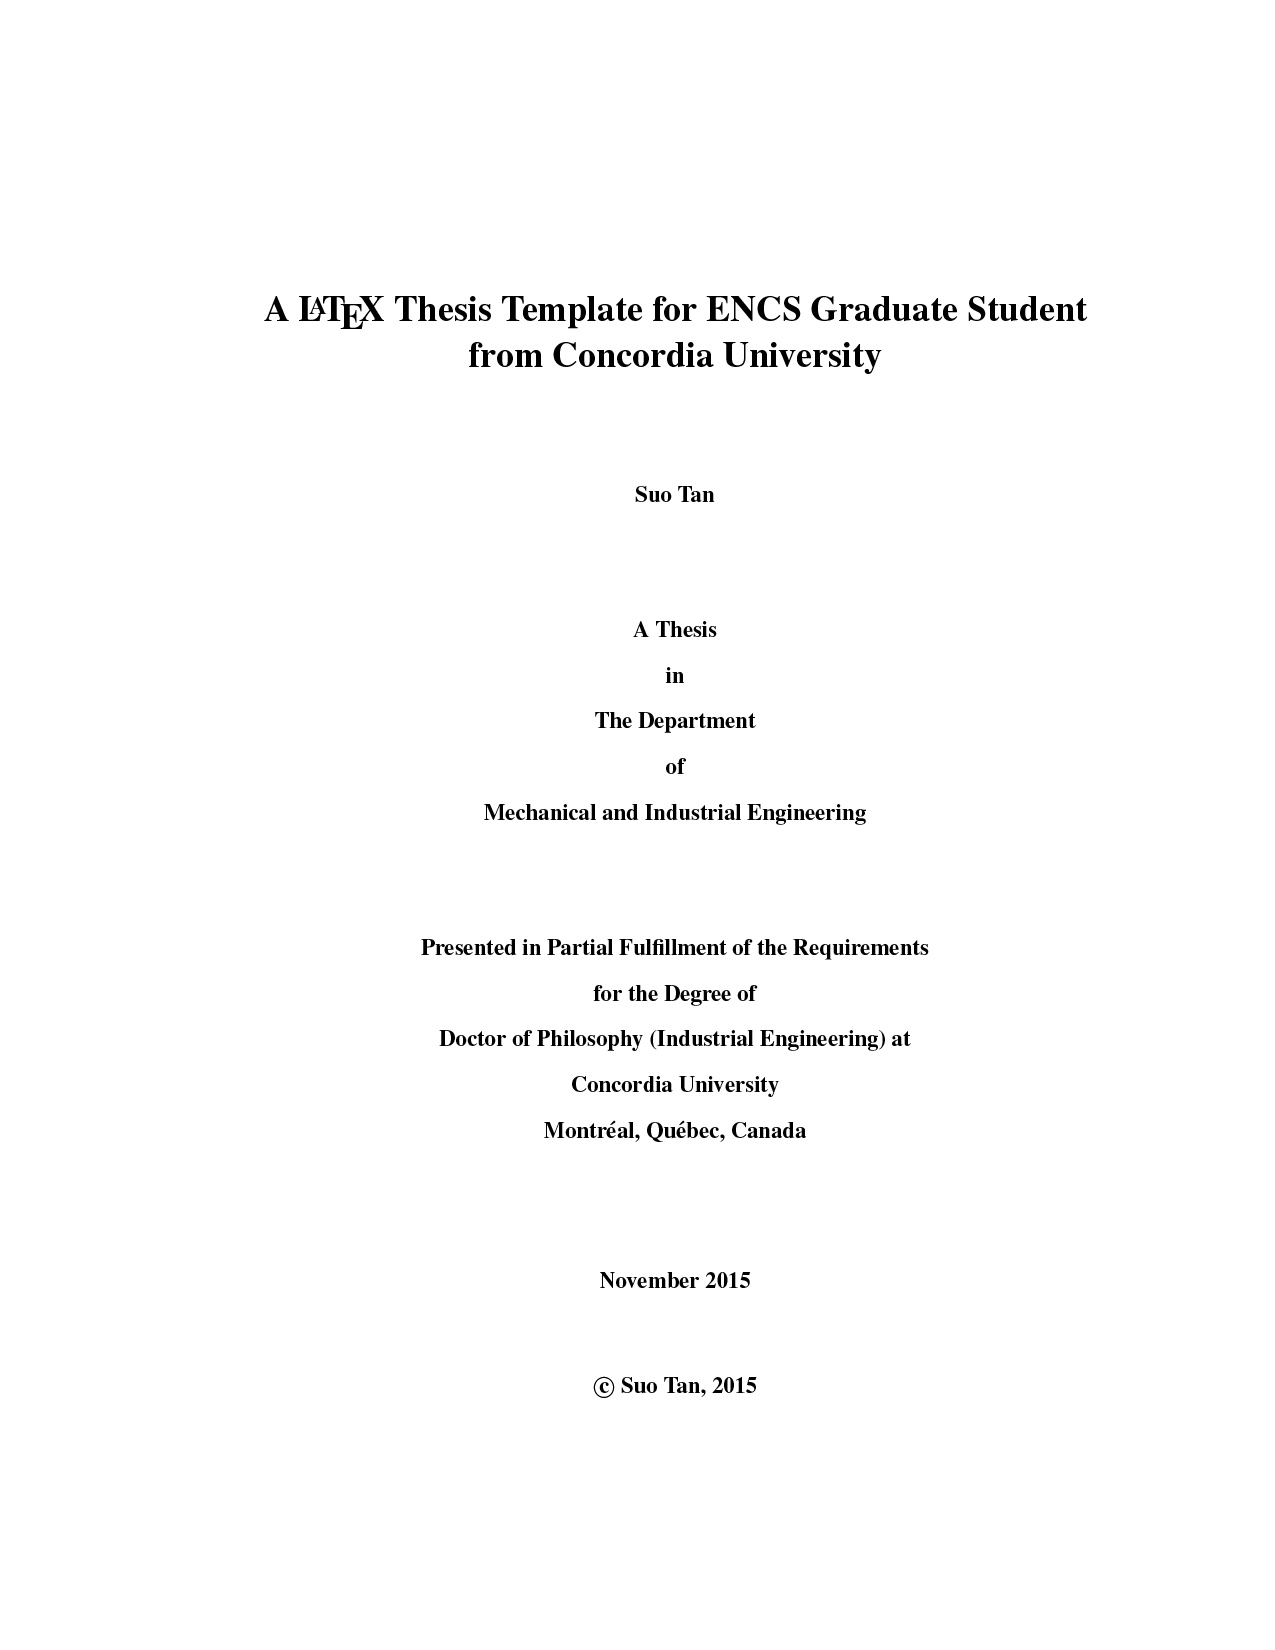 uvic thesis submission